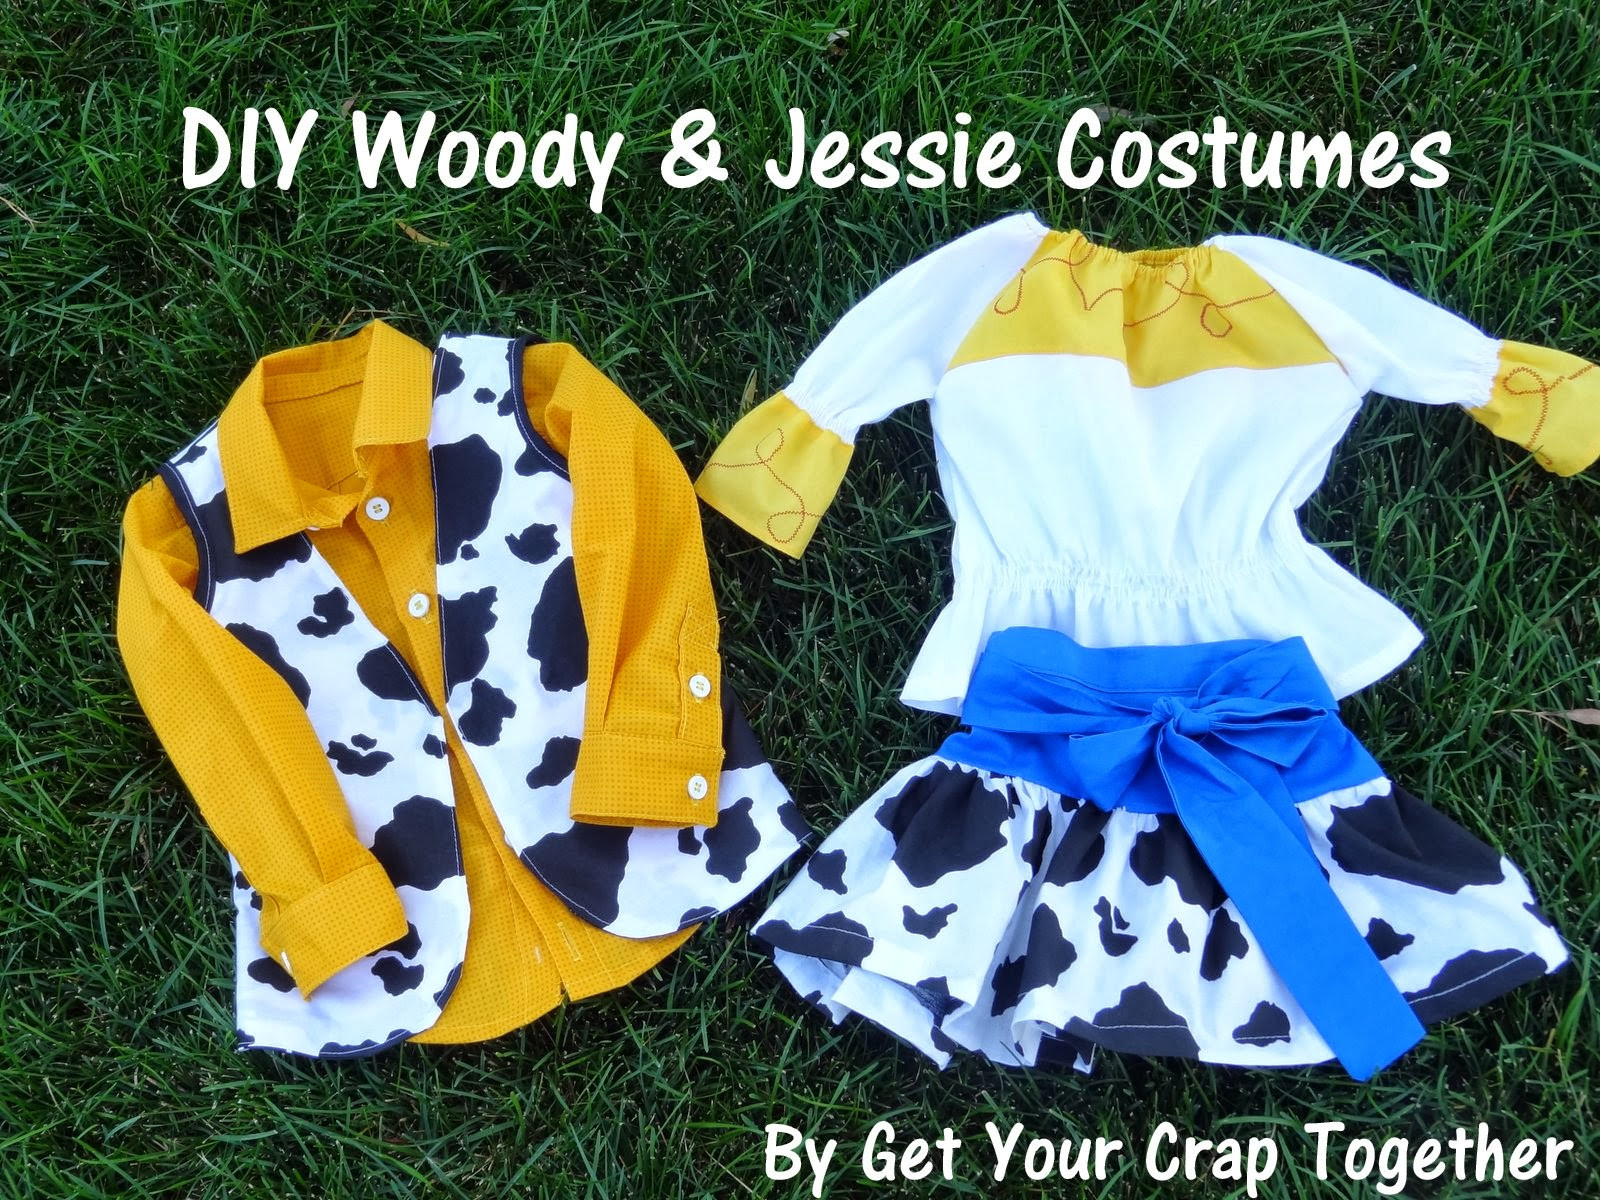 Best ideas about DIY Woody Costume . Save or Pin DIY Woody & Jessie Costumes 31 Day of Halloween GYCT Now.